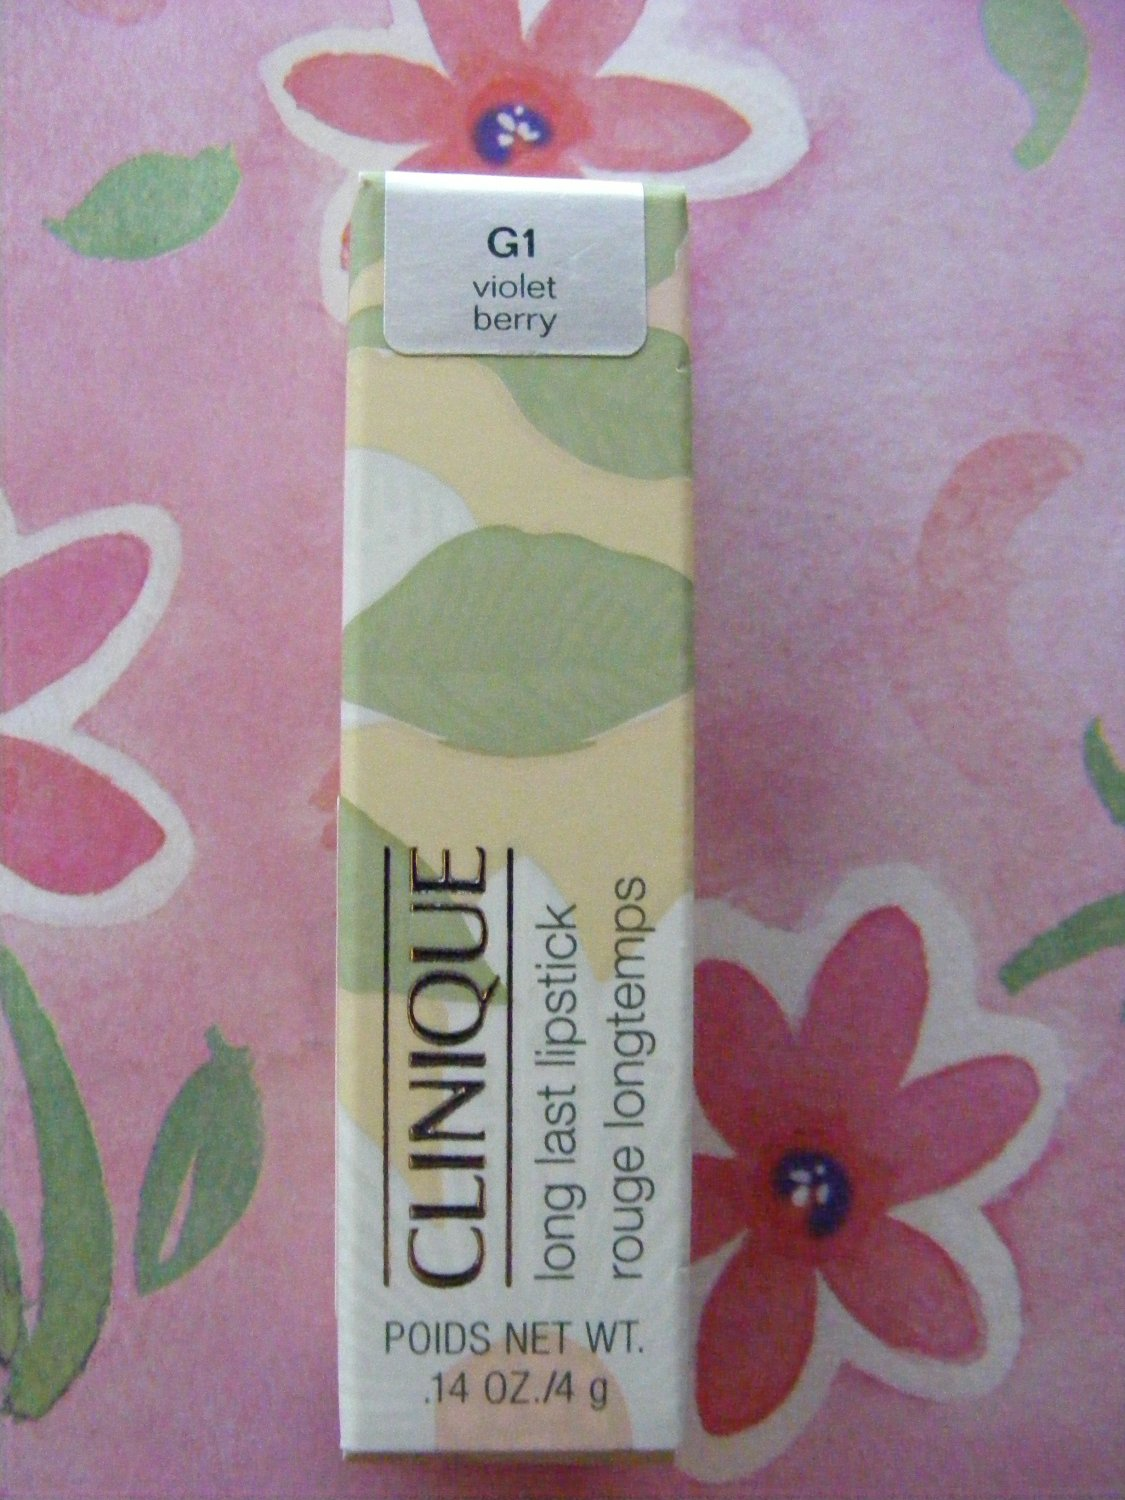 Clinique Violet Berry G1 Long Last Lipstick New in Box!